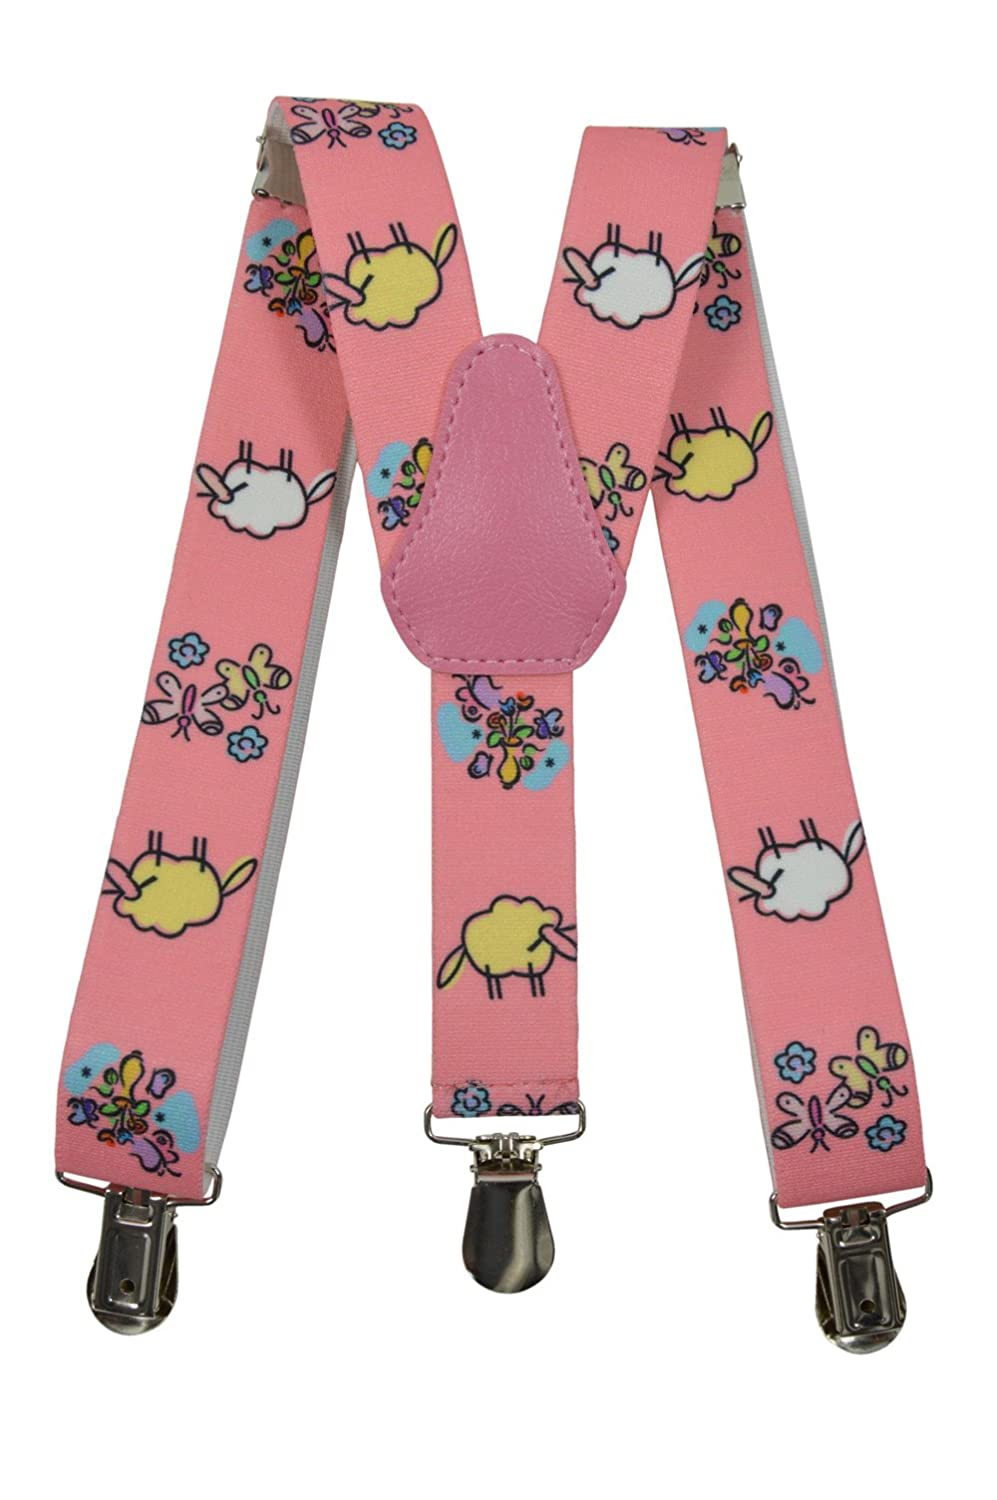 Childrens 1-5 Years Elasticated Clip on Braces / Suspenders with Sheep Design KIDSBRACESJsheep-grey